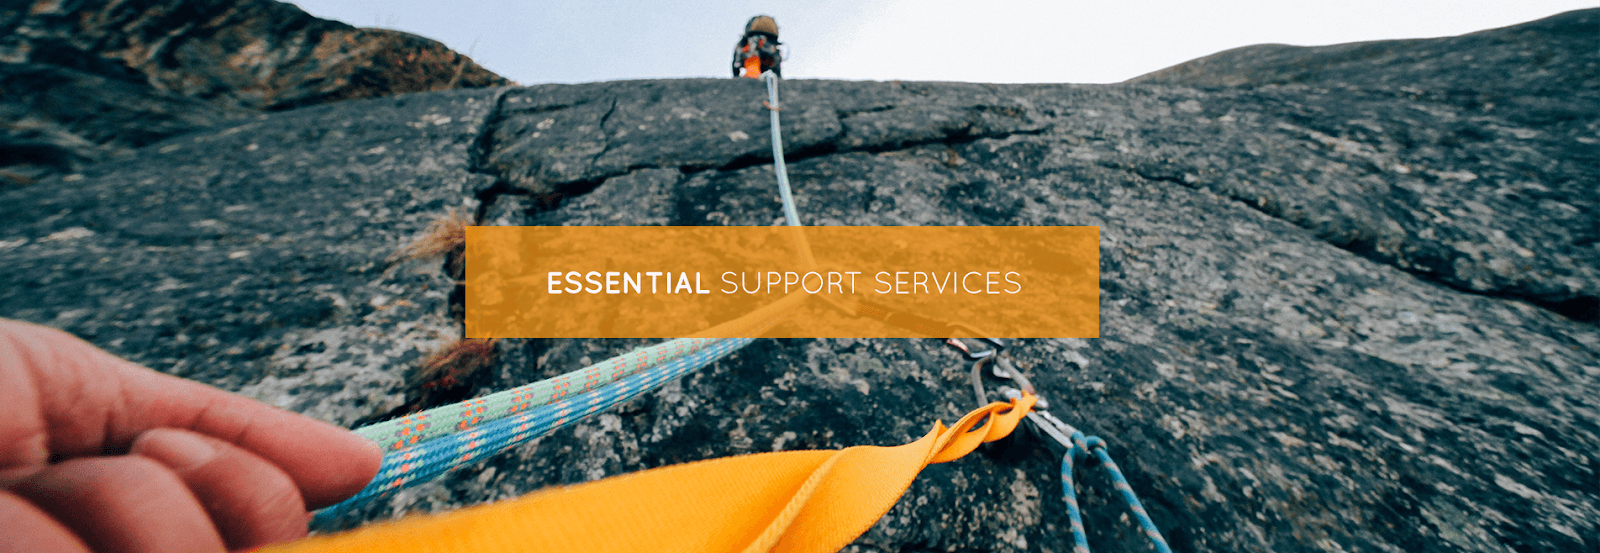 support services - Essential Support Services